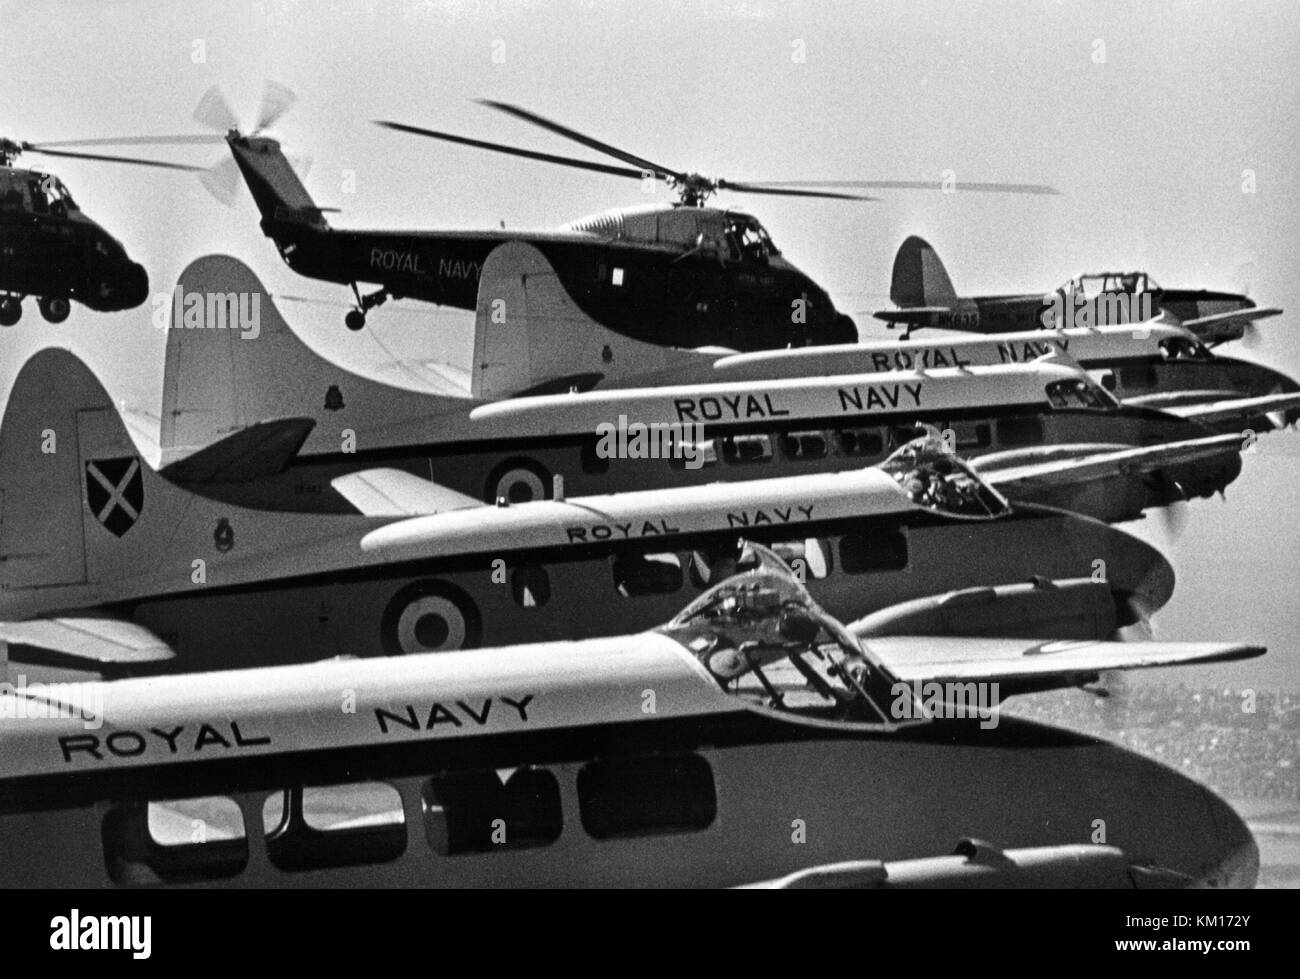 AJAXNETPHOTO. 1974. ISLE OF WIGHT, ENGLAND. - GREY SPARROWS - (FRONT TO REAR) DEVONS, HERONS, CHIPMUNK T-10 AND - Stock Image